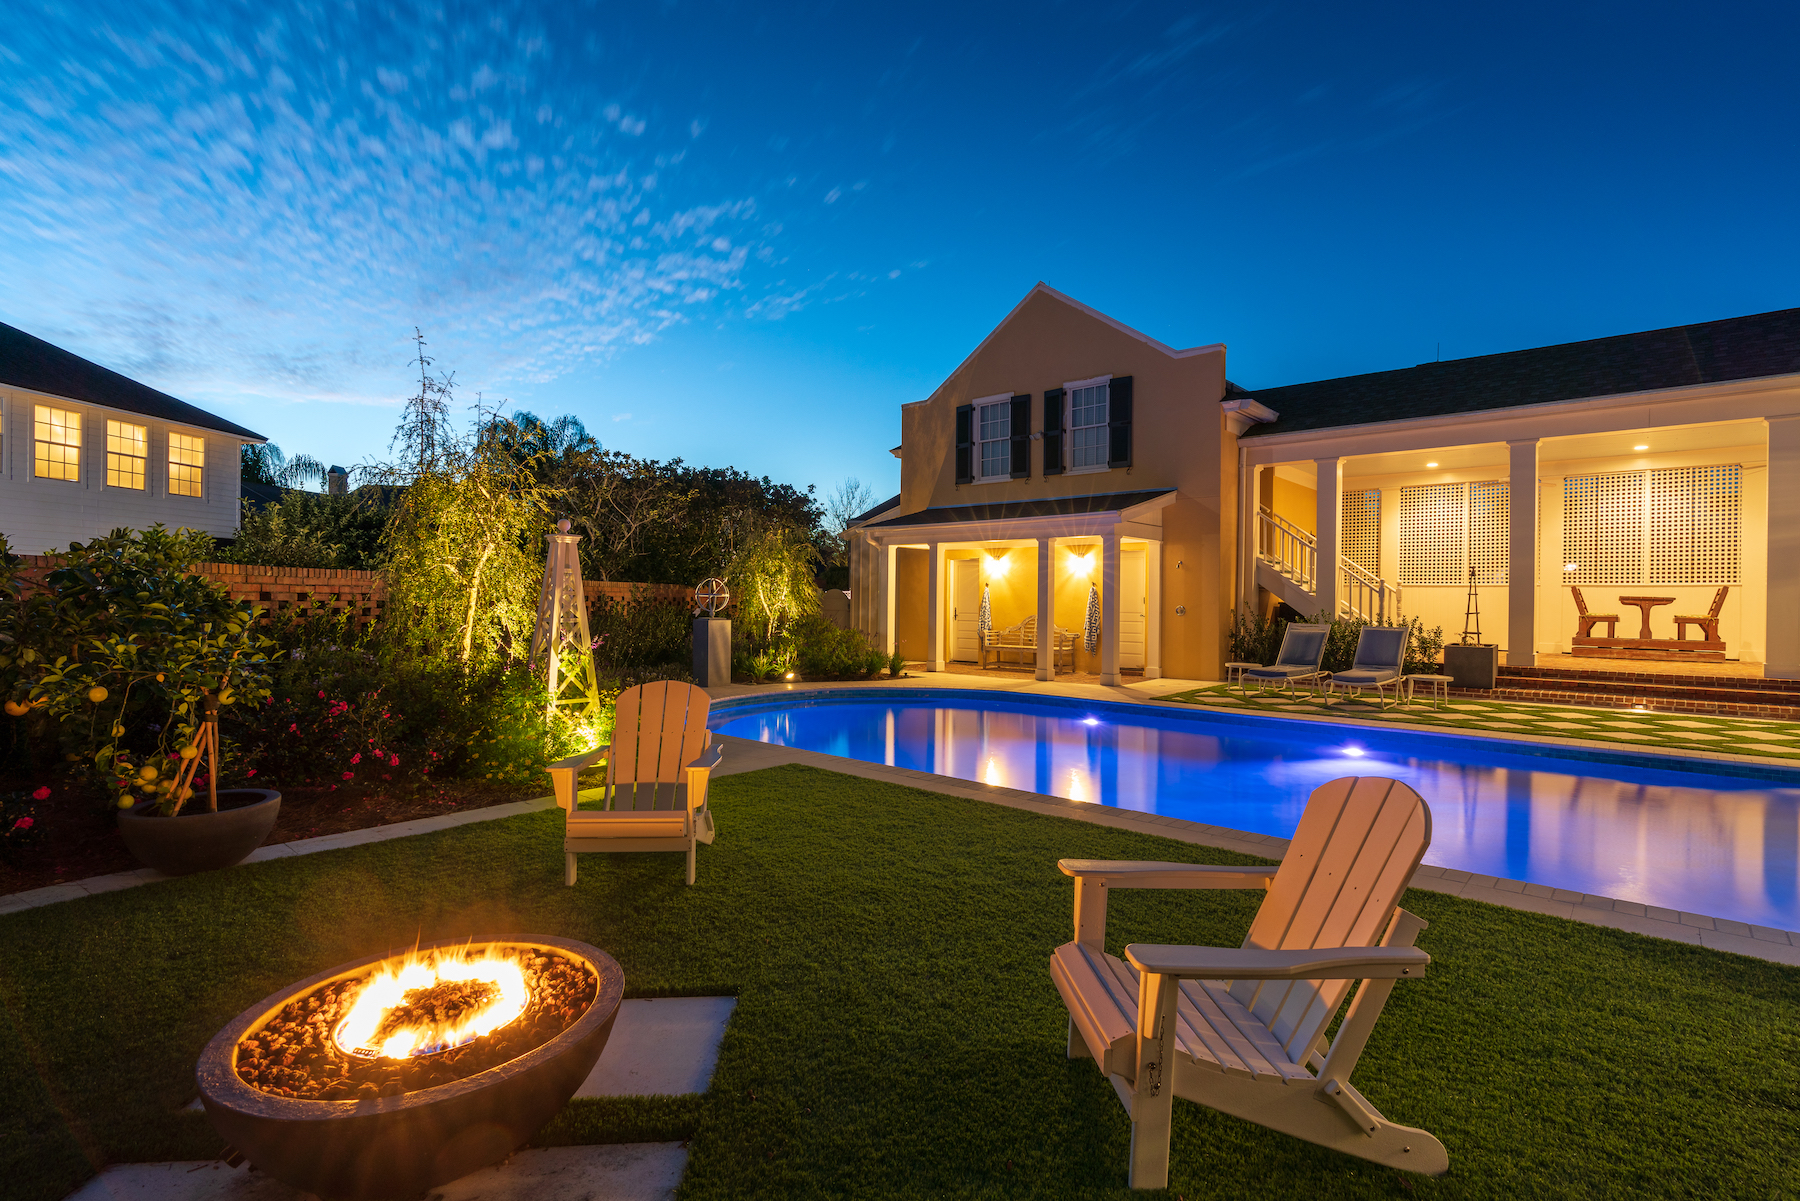 Fire pit and patio seating